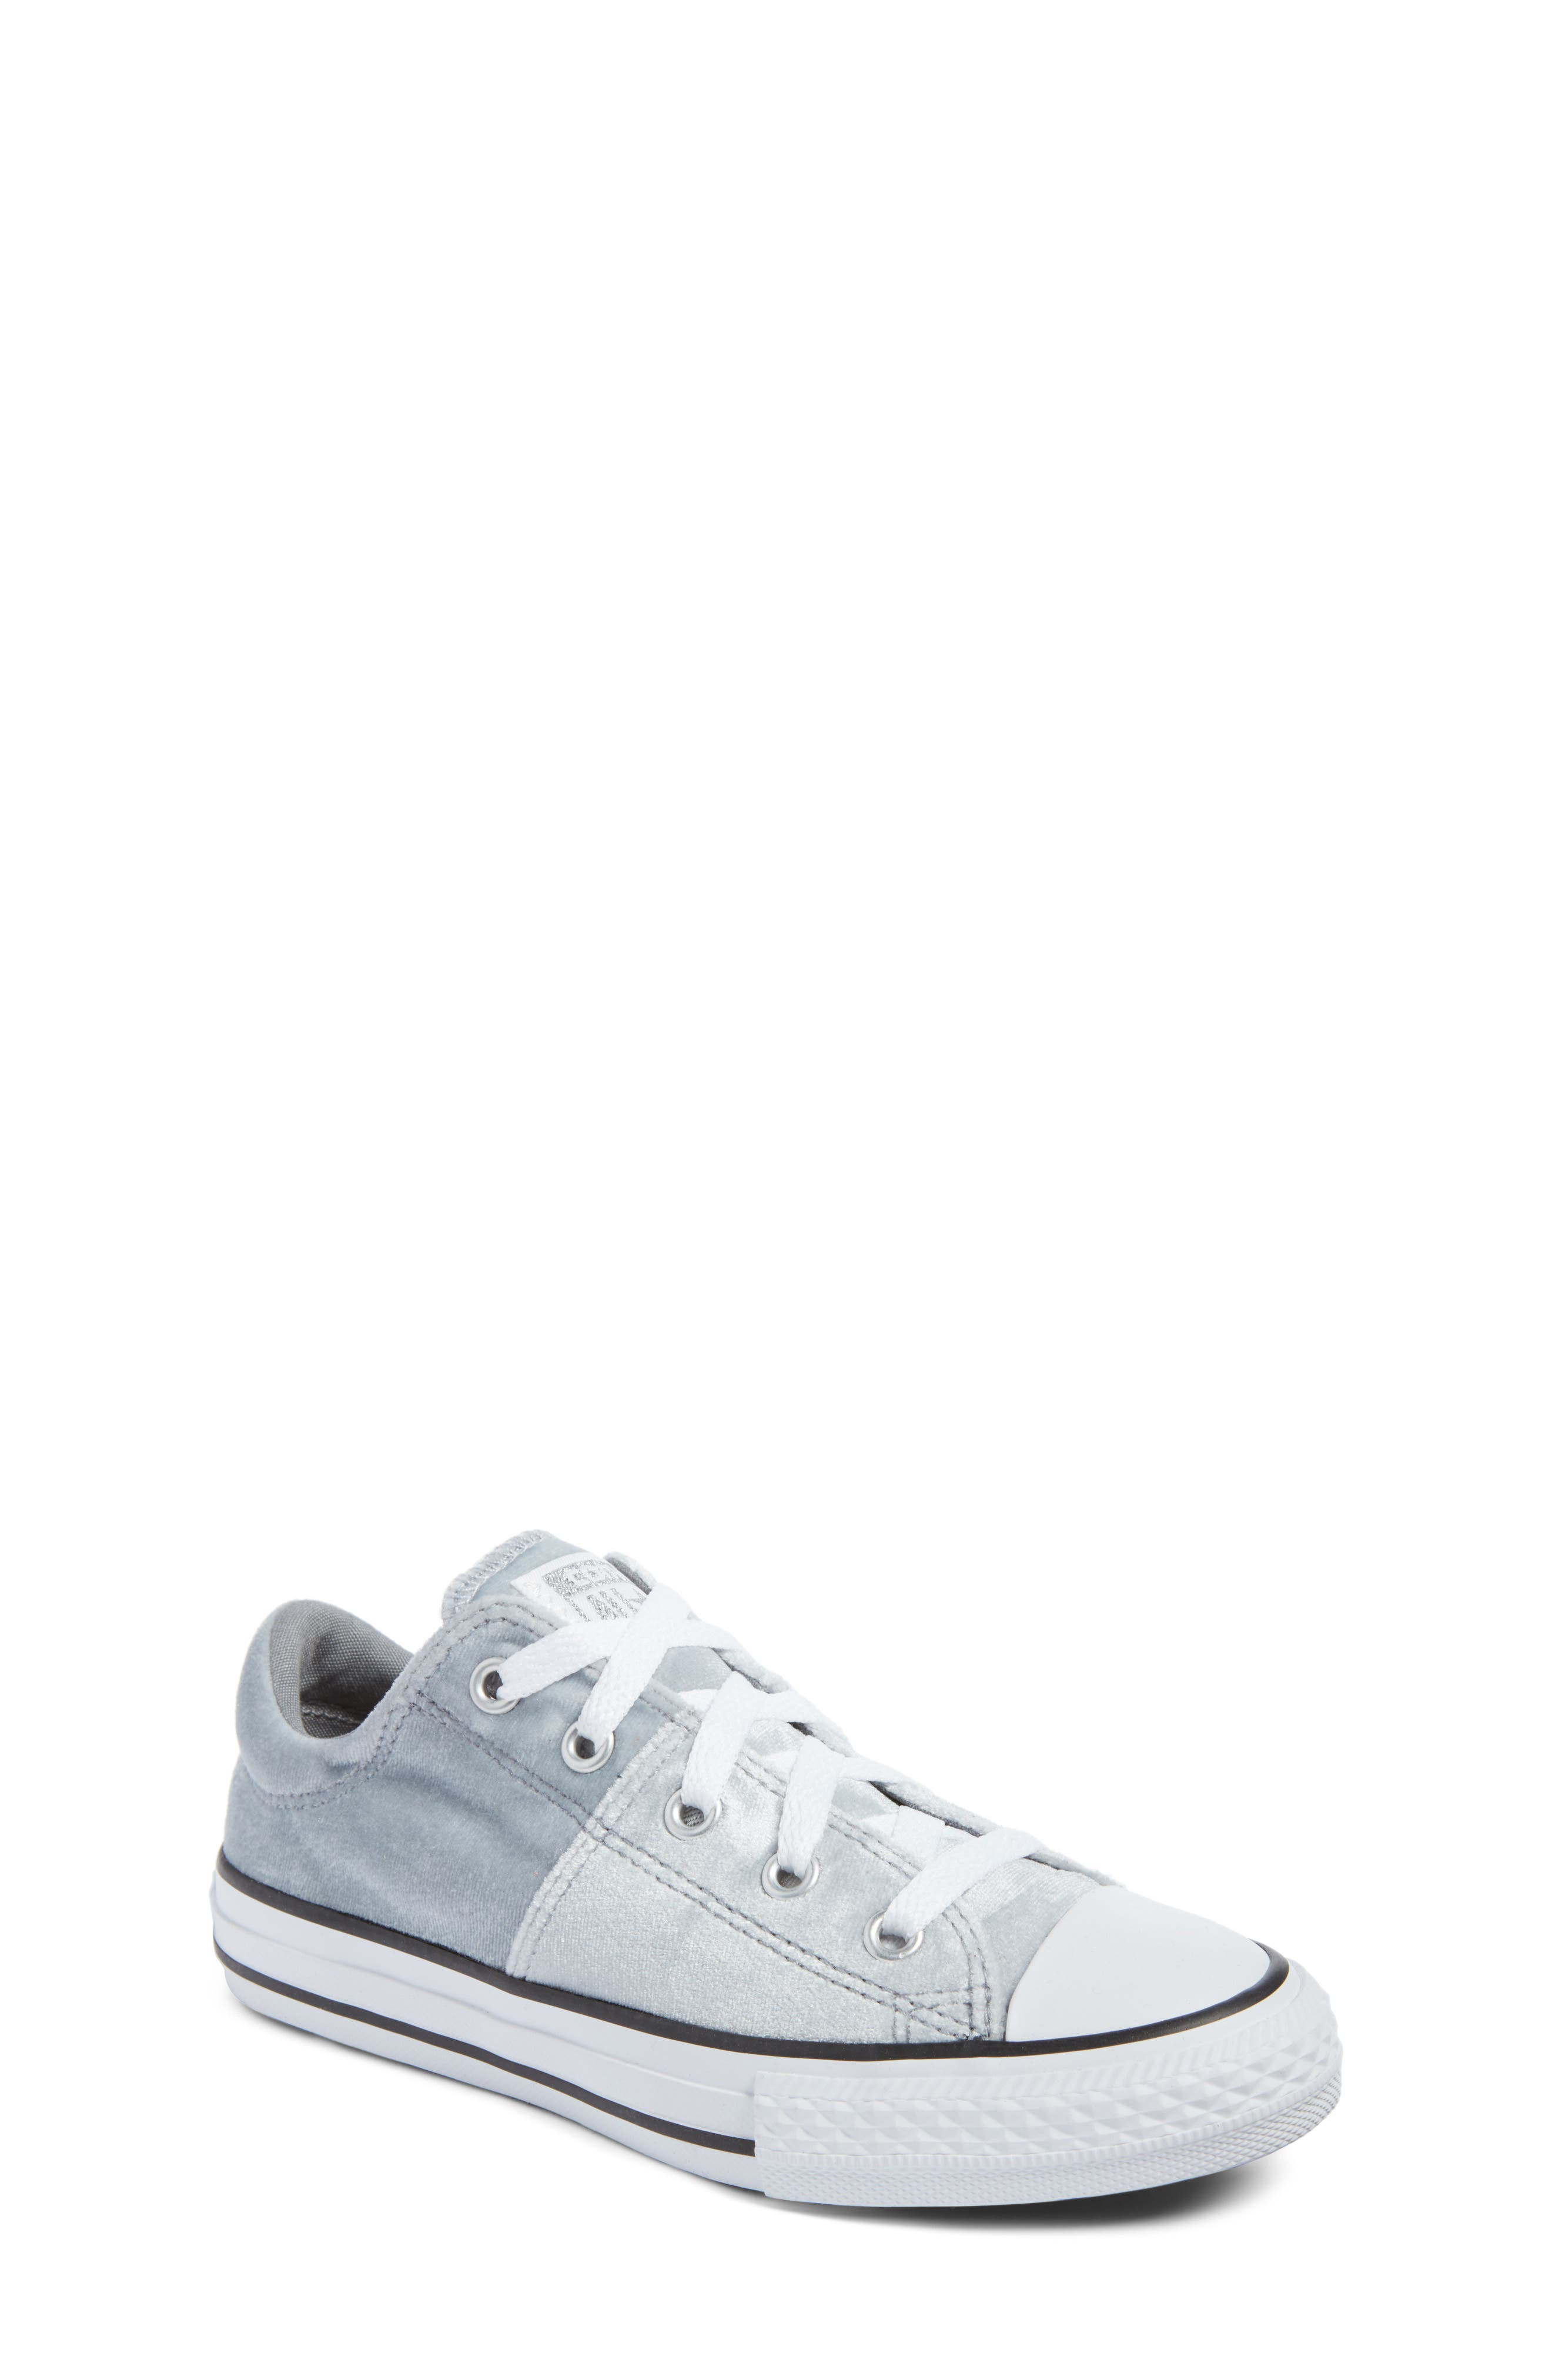 Chuck Taylor<sup>®</sup> All Star<sup>®</sup> Madison Velvet Low Top Sneaker,                             Main thumbnail 1, color,                             020